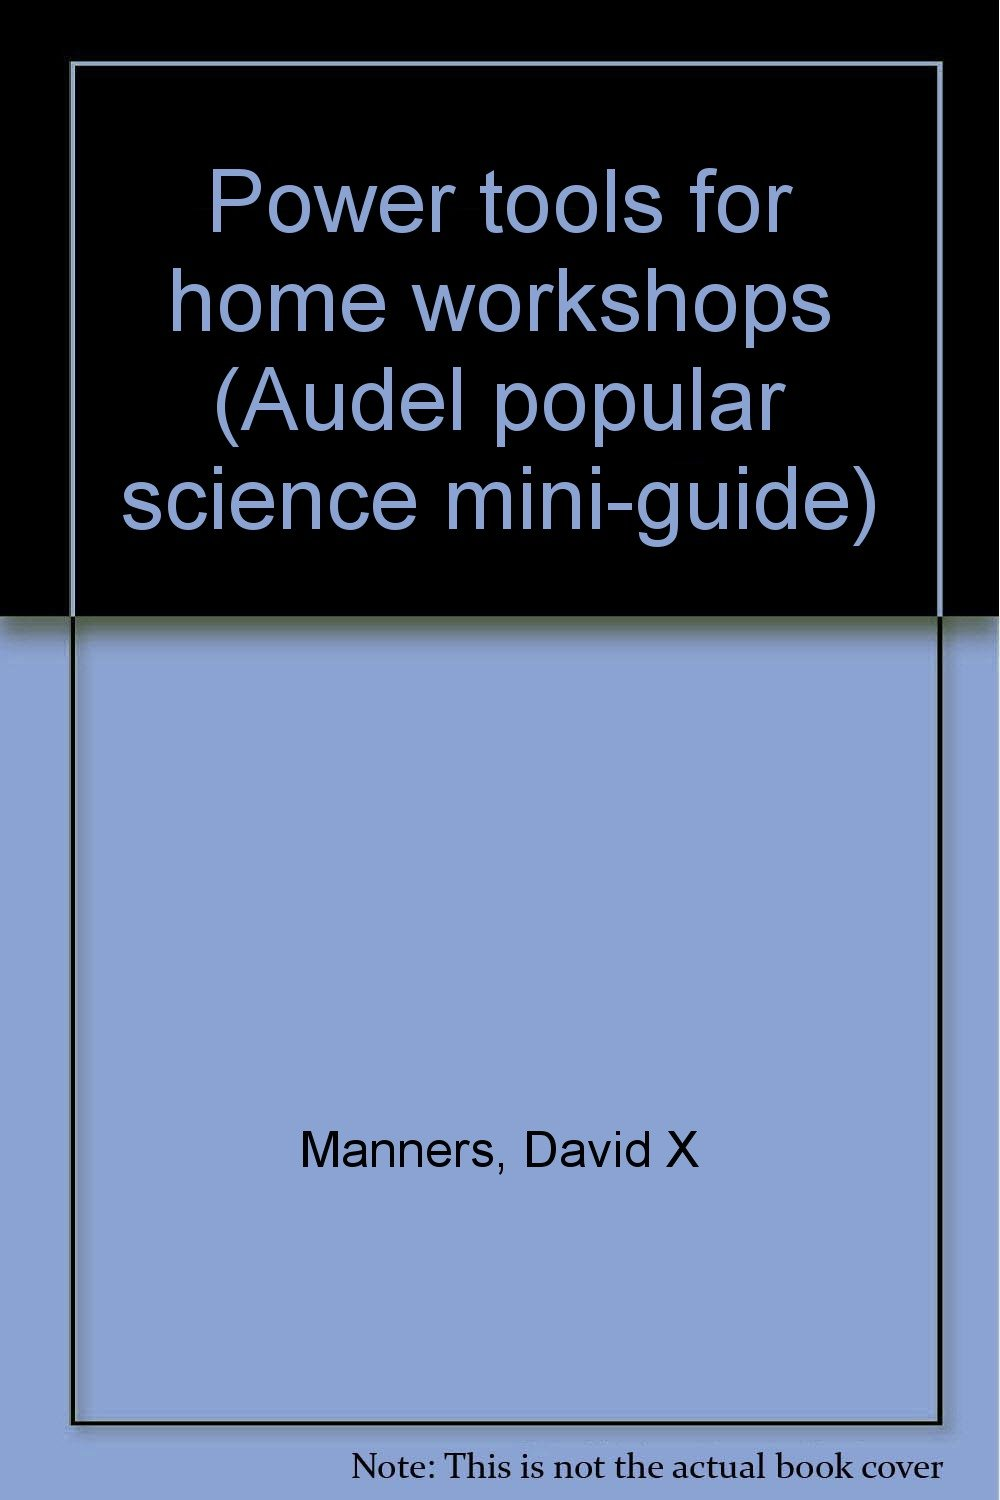 Power tools for home workshops (Audel popular science mini-guide)